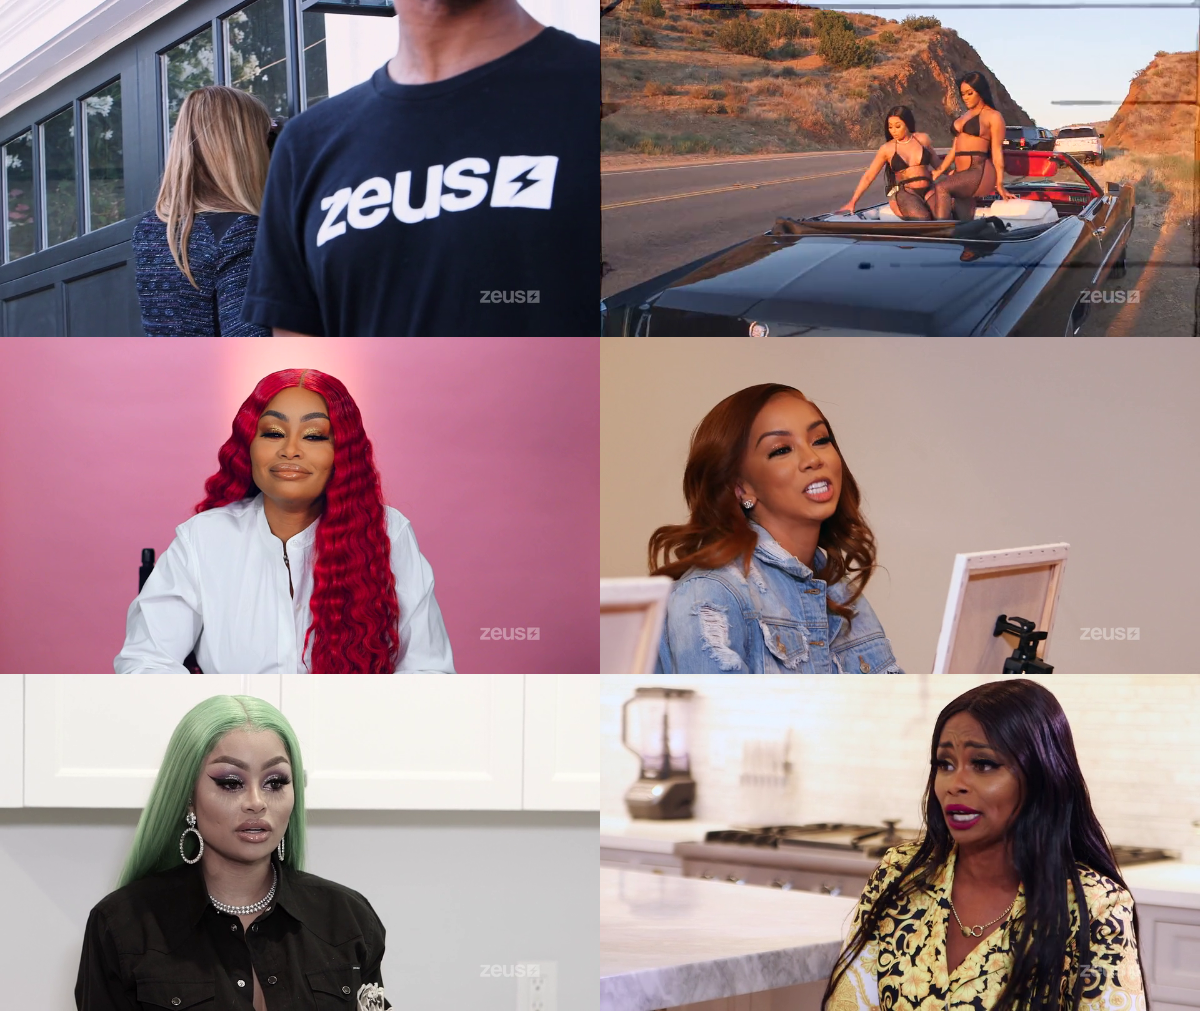 123743135_the-real-blac-chyna-s01e13-from-pillar-to-post-web-x264-crimsontgx.png